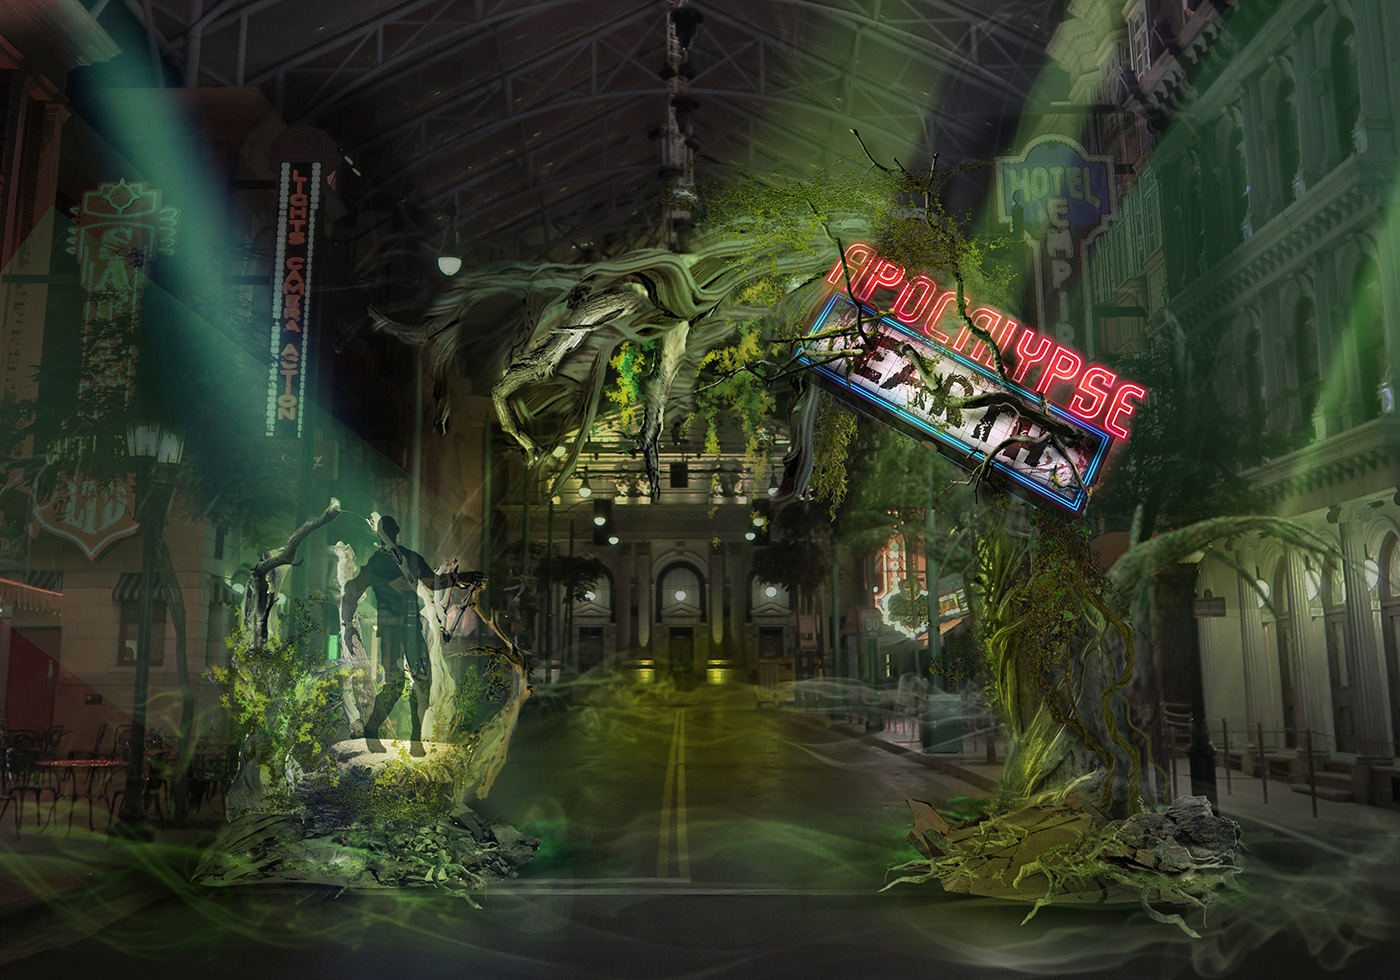 Apocalypse Earth scare zone at USS Halloween Horror Nights 8 - Read all about it at Dejiki.com Full HHN8 Event Line-Up and Ticketing Information